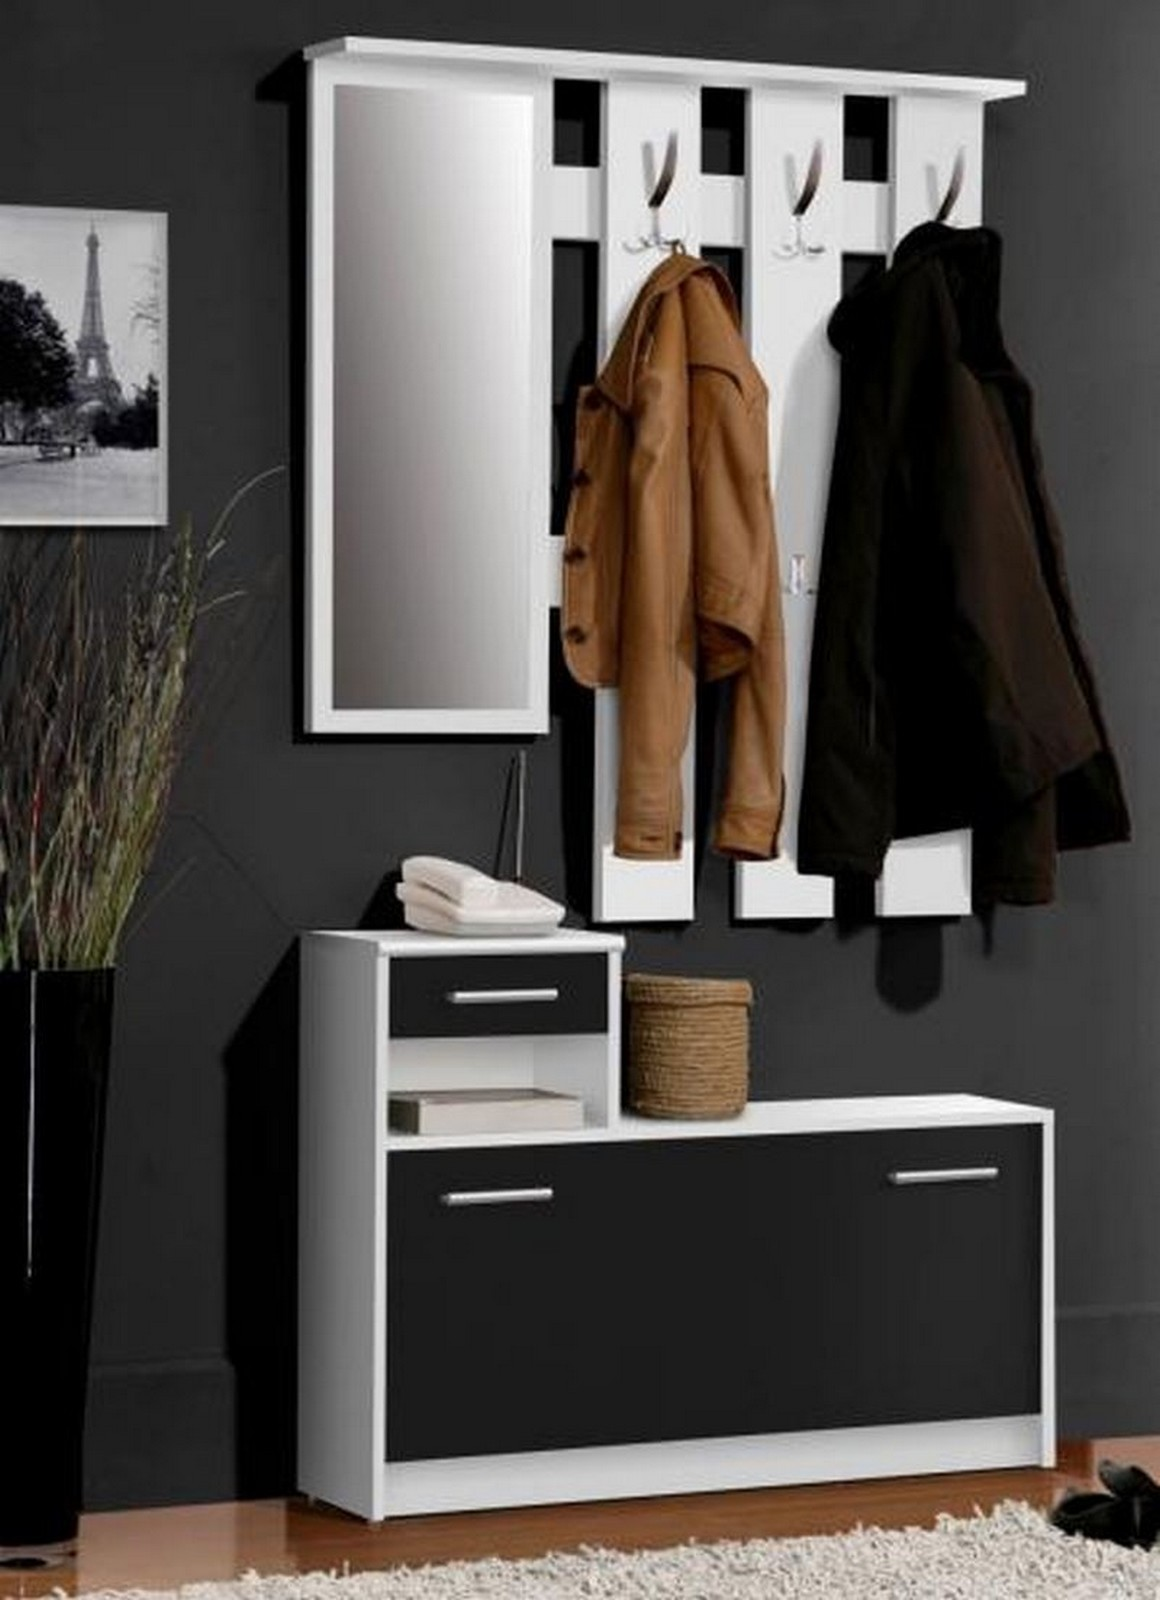 garderoben set garderobe flurgarderobe wei schwarz ebay. Black Bedroom Furniture Sets. Home Design Ideas